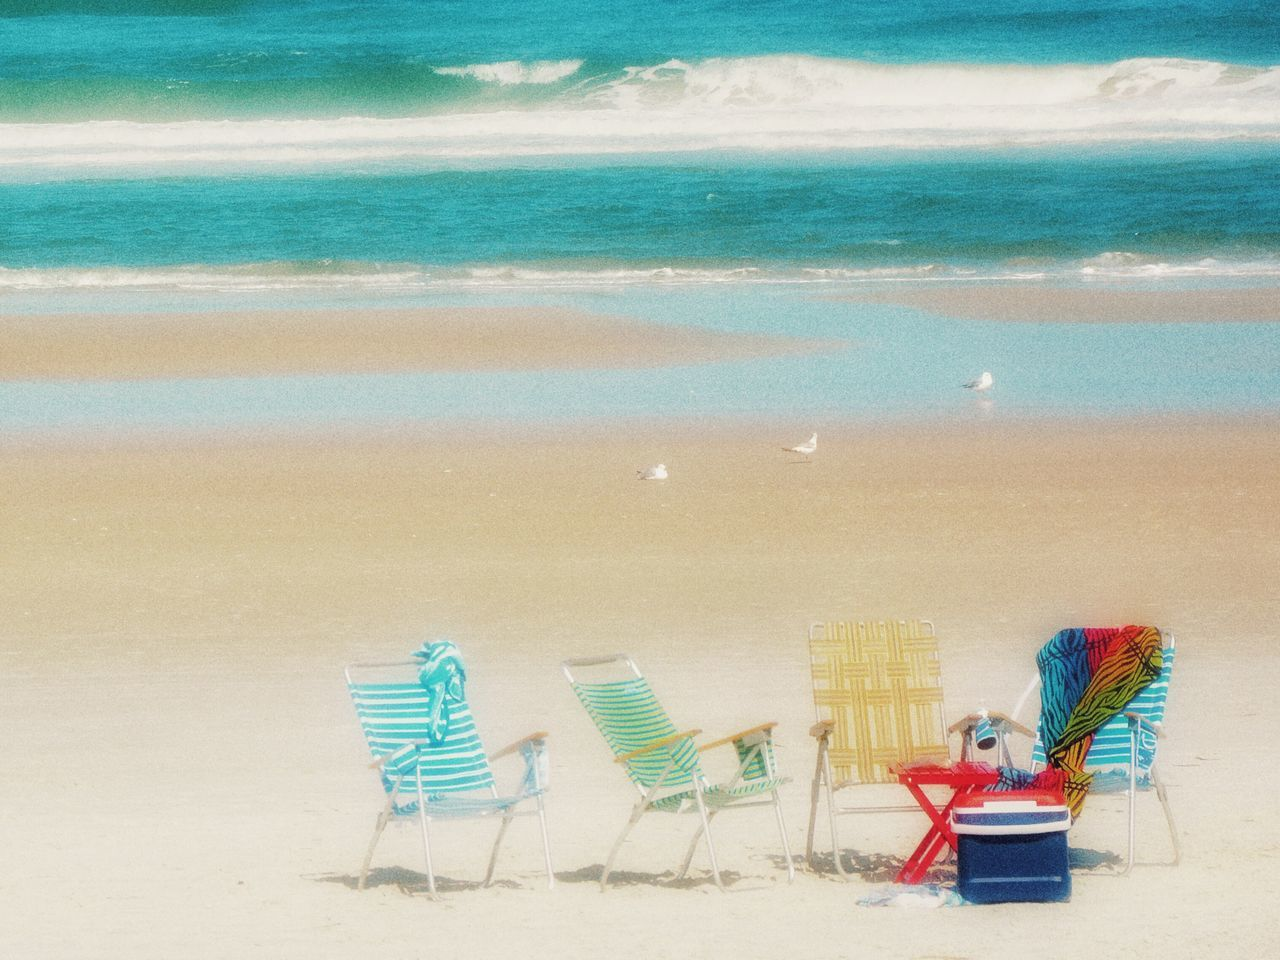 Beach Sand Water Deck Chair Shore Horizon Over Water Relaxation Outdoors Tranquility Folding Chair Coastline Scenics Florida Daytona Beach Colors